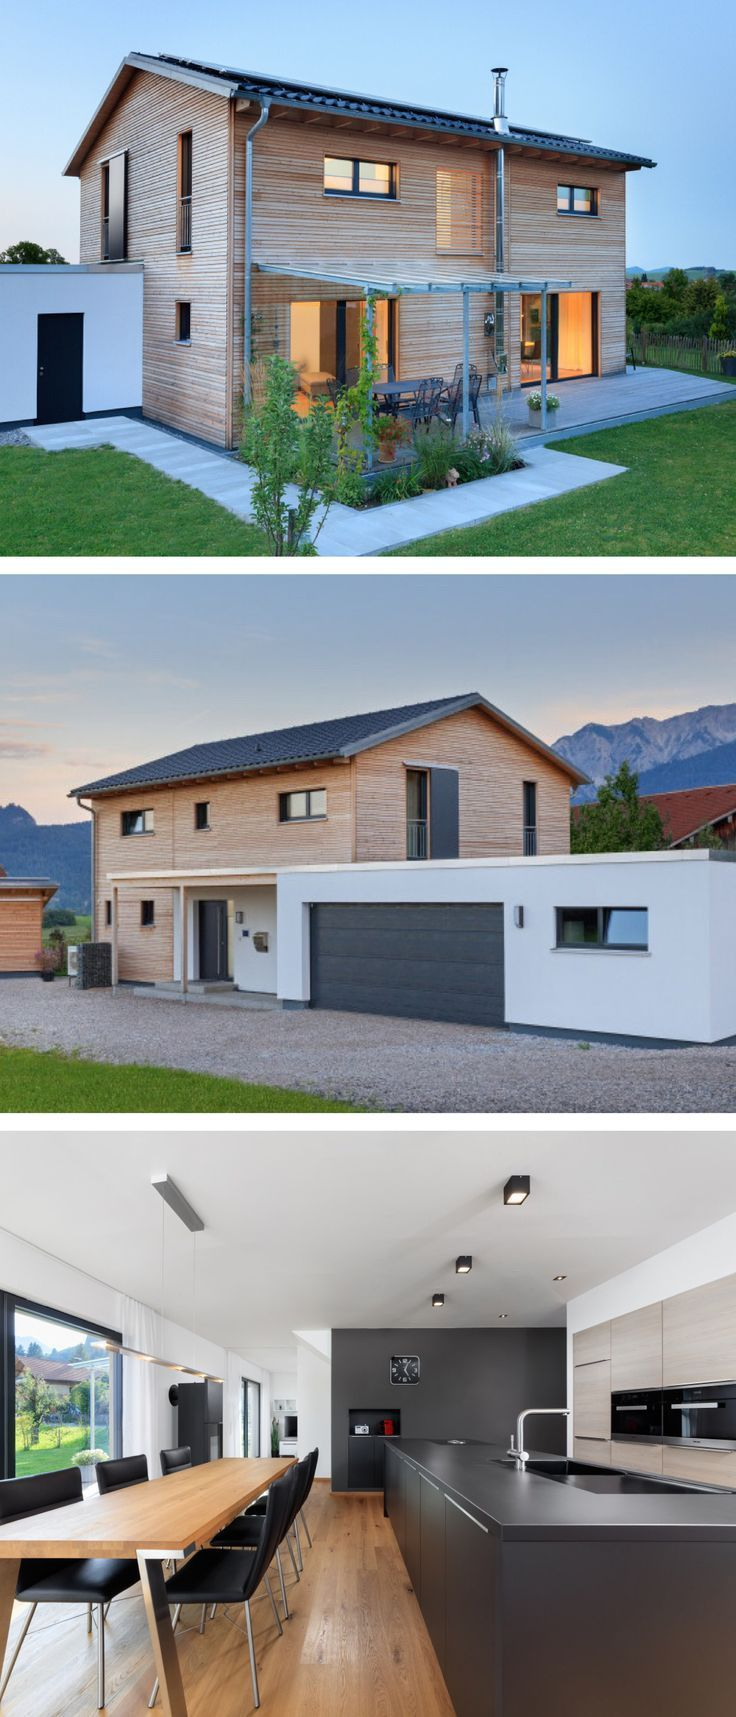 Modernes Einfamilienhaus mit Garage, Steildacharchitektur & Holzfassade – Fer – decorationmyroom.site   – Deutch | Sosyal Penguin